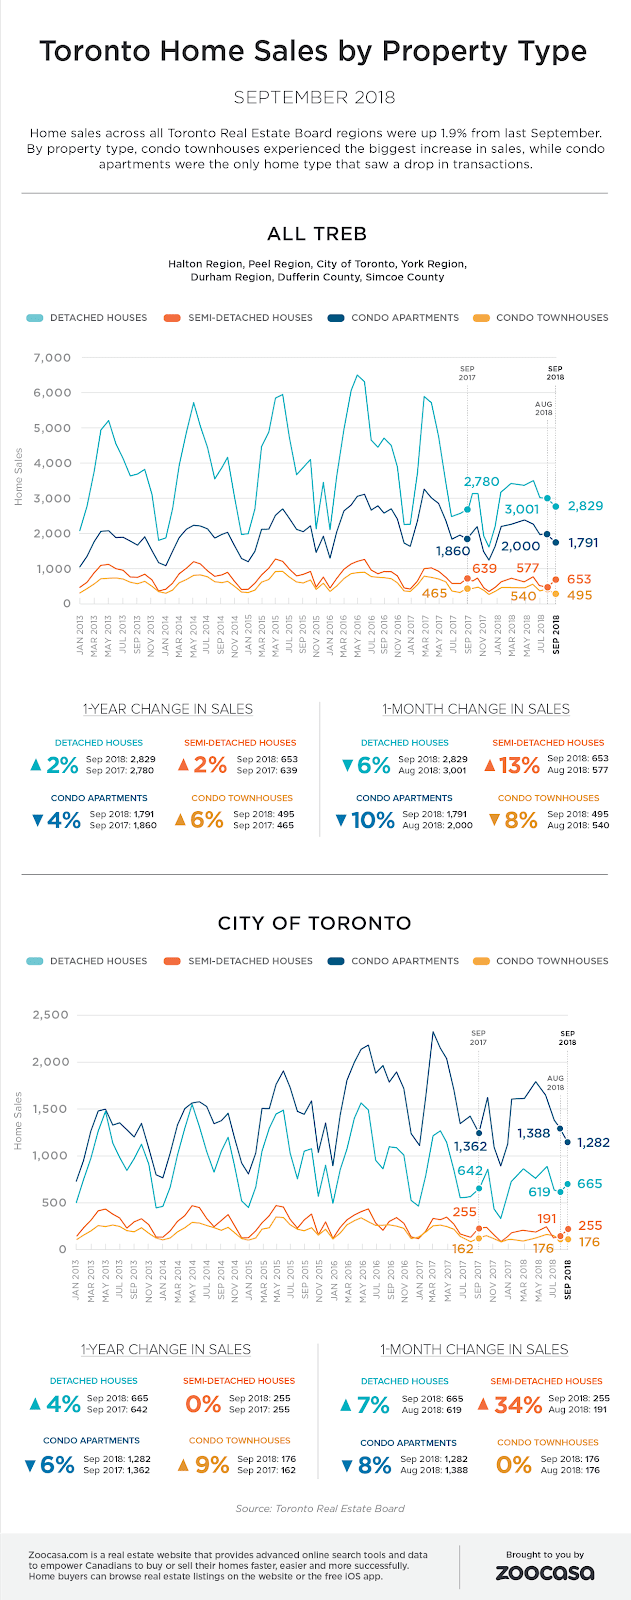 toronto-home-sales-sep-2018-treb-zoocasa